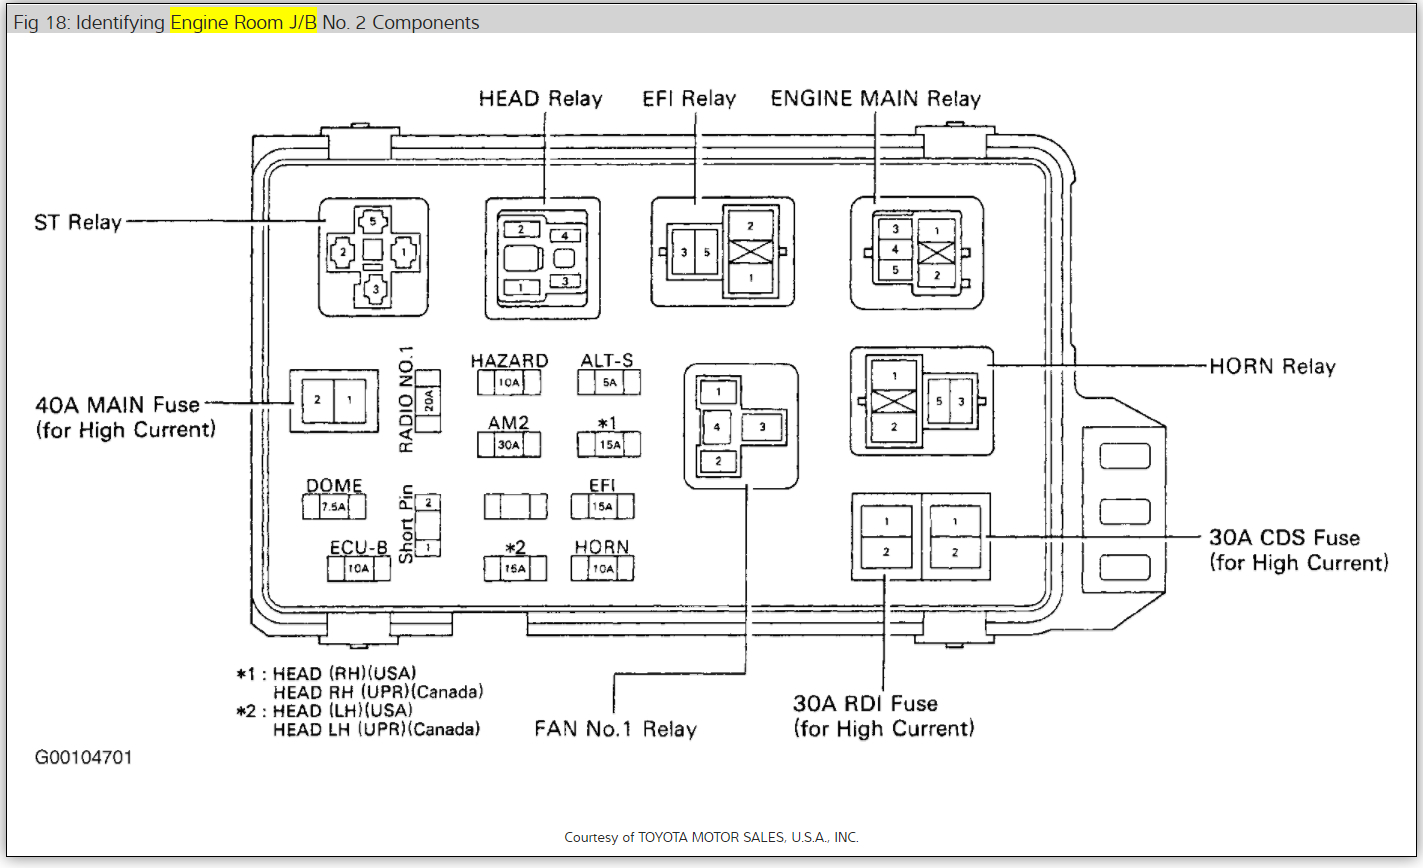 fuse box i have no cover to the fuse box inside the car to know rh 2carpros  com 2007 Toyota Camry Fuse Box Diagram 2010 Toyota Camry Fuse Box Diagram